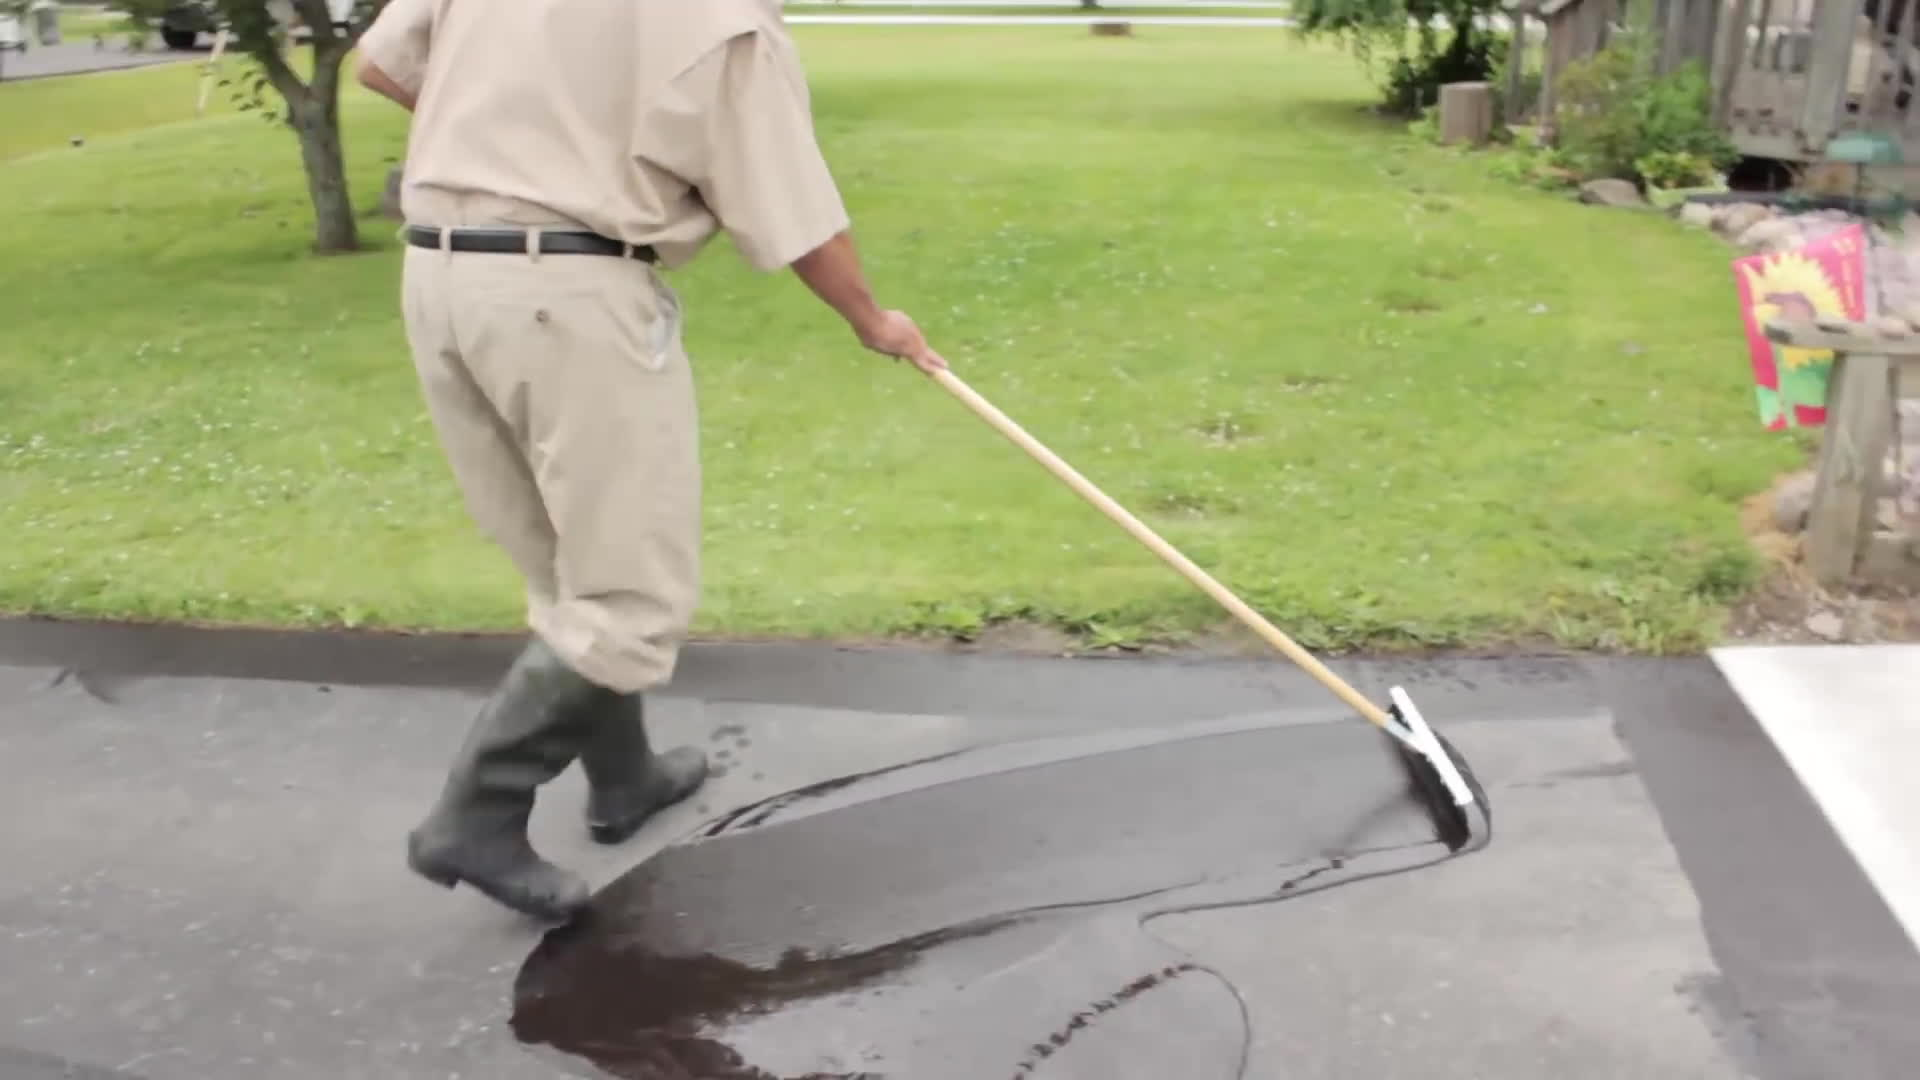 Asphalt gifs search search share on homdor diy do it yourself pavement asphalt seal your own driveway gifs solutioingenieria